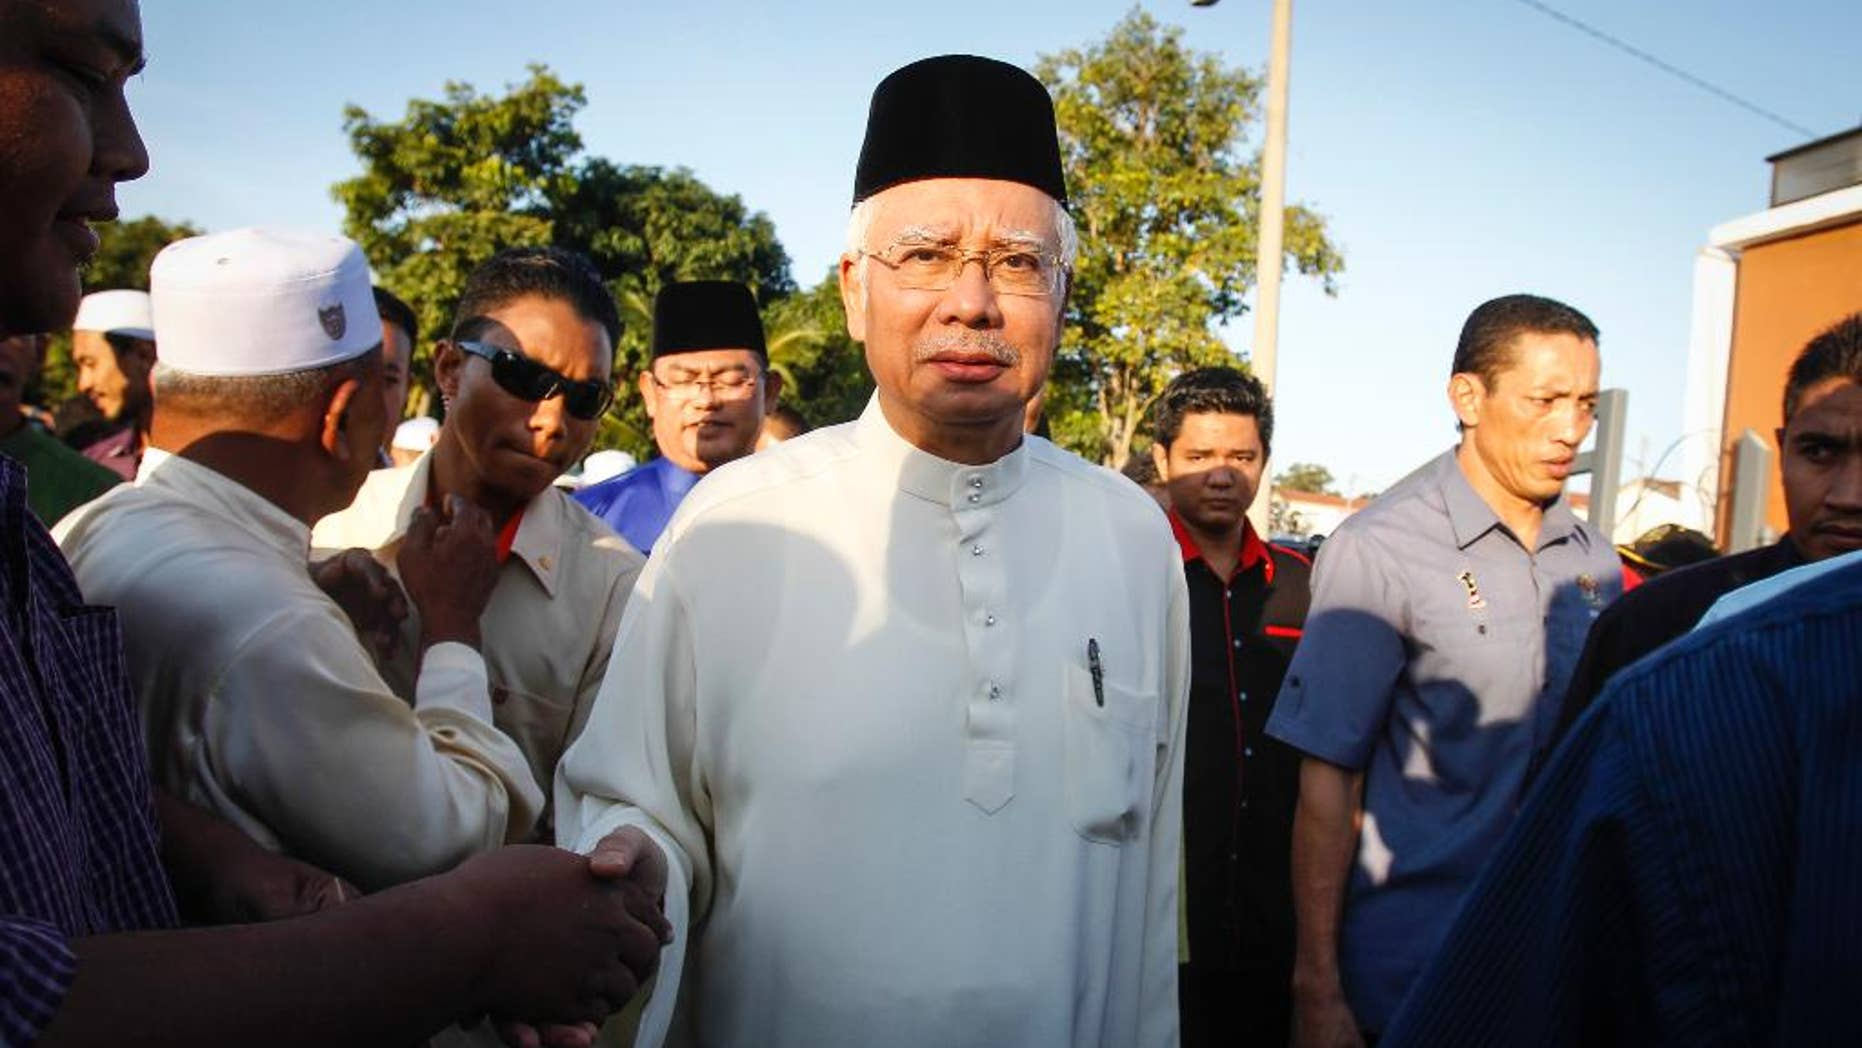 Malaysian Prime Minister Najib Razak arrives for a Ramadan breakfast at a mosque in Semenyih outside Kuala Lumpur, Malaysia on Sunday, July 5, 2015. Razak is facing the risk of criminal charges over allegations that hundreds of millions of dollars were funneled from an indebted state fund to his personal bank accounts, the first time a Malaysian leader has faced criminal allegations. (AP Photo/Joshua Paul)